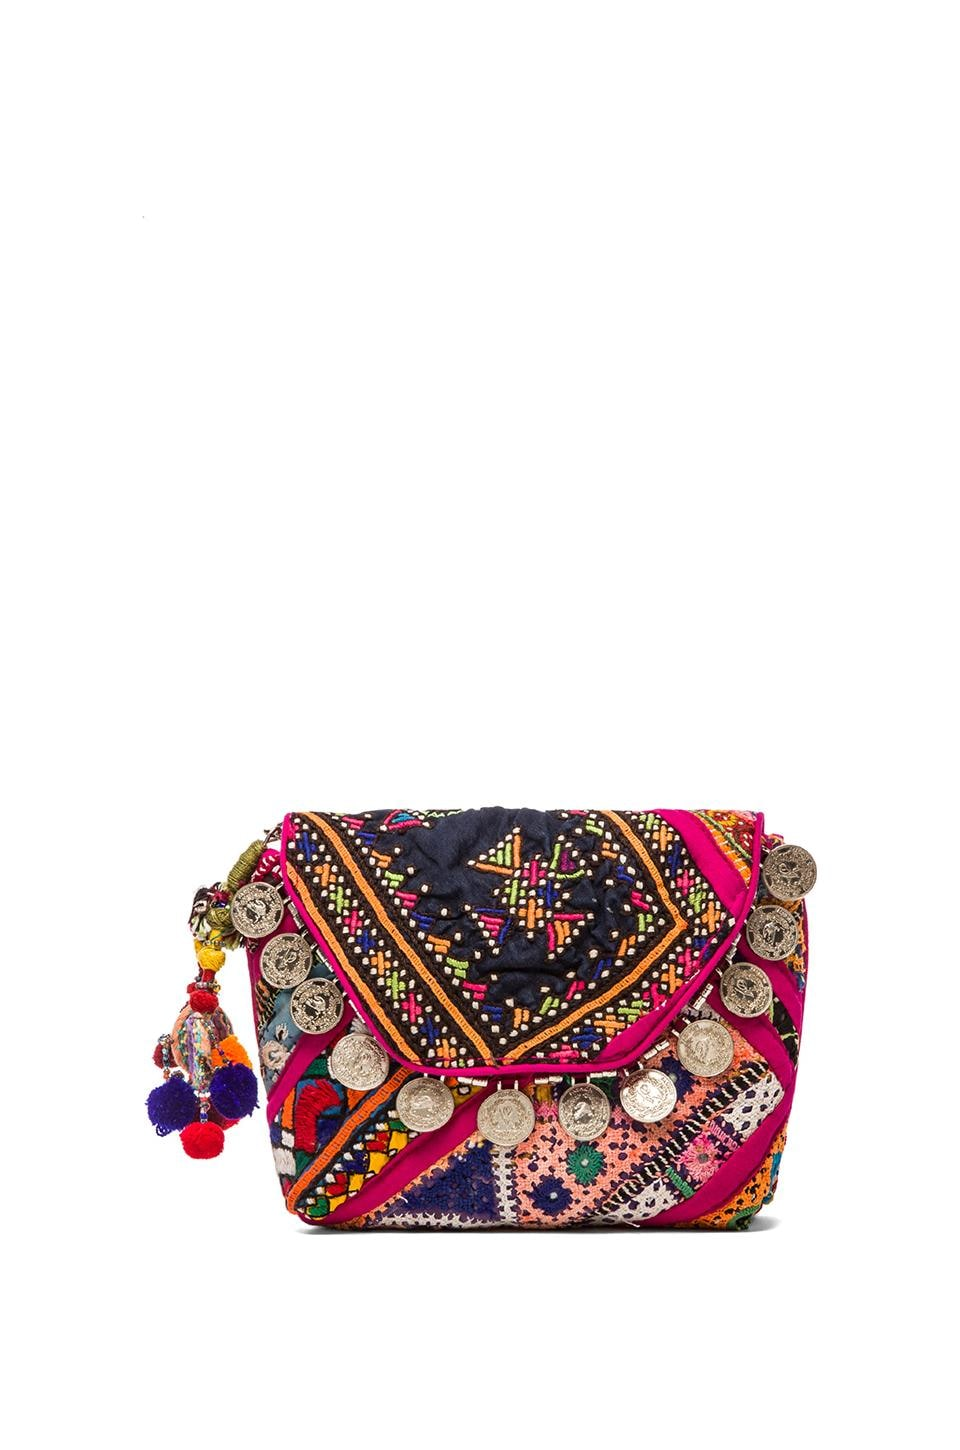 Gypsy 05 Pushkar Clutch in Fuchsia